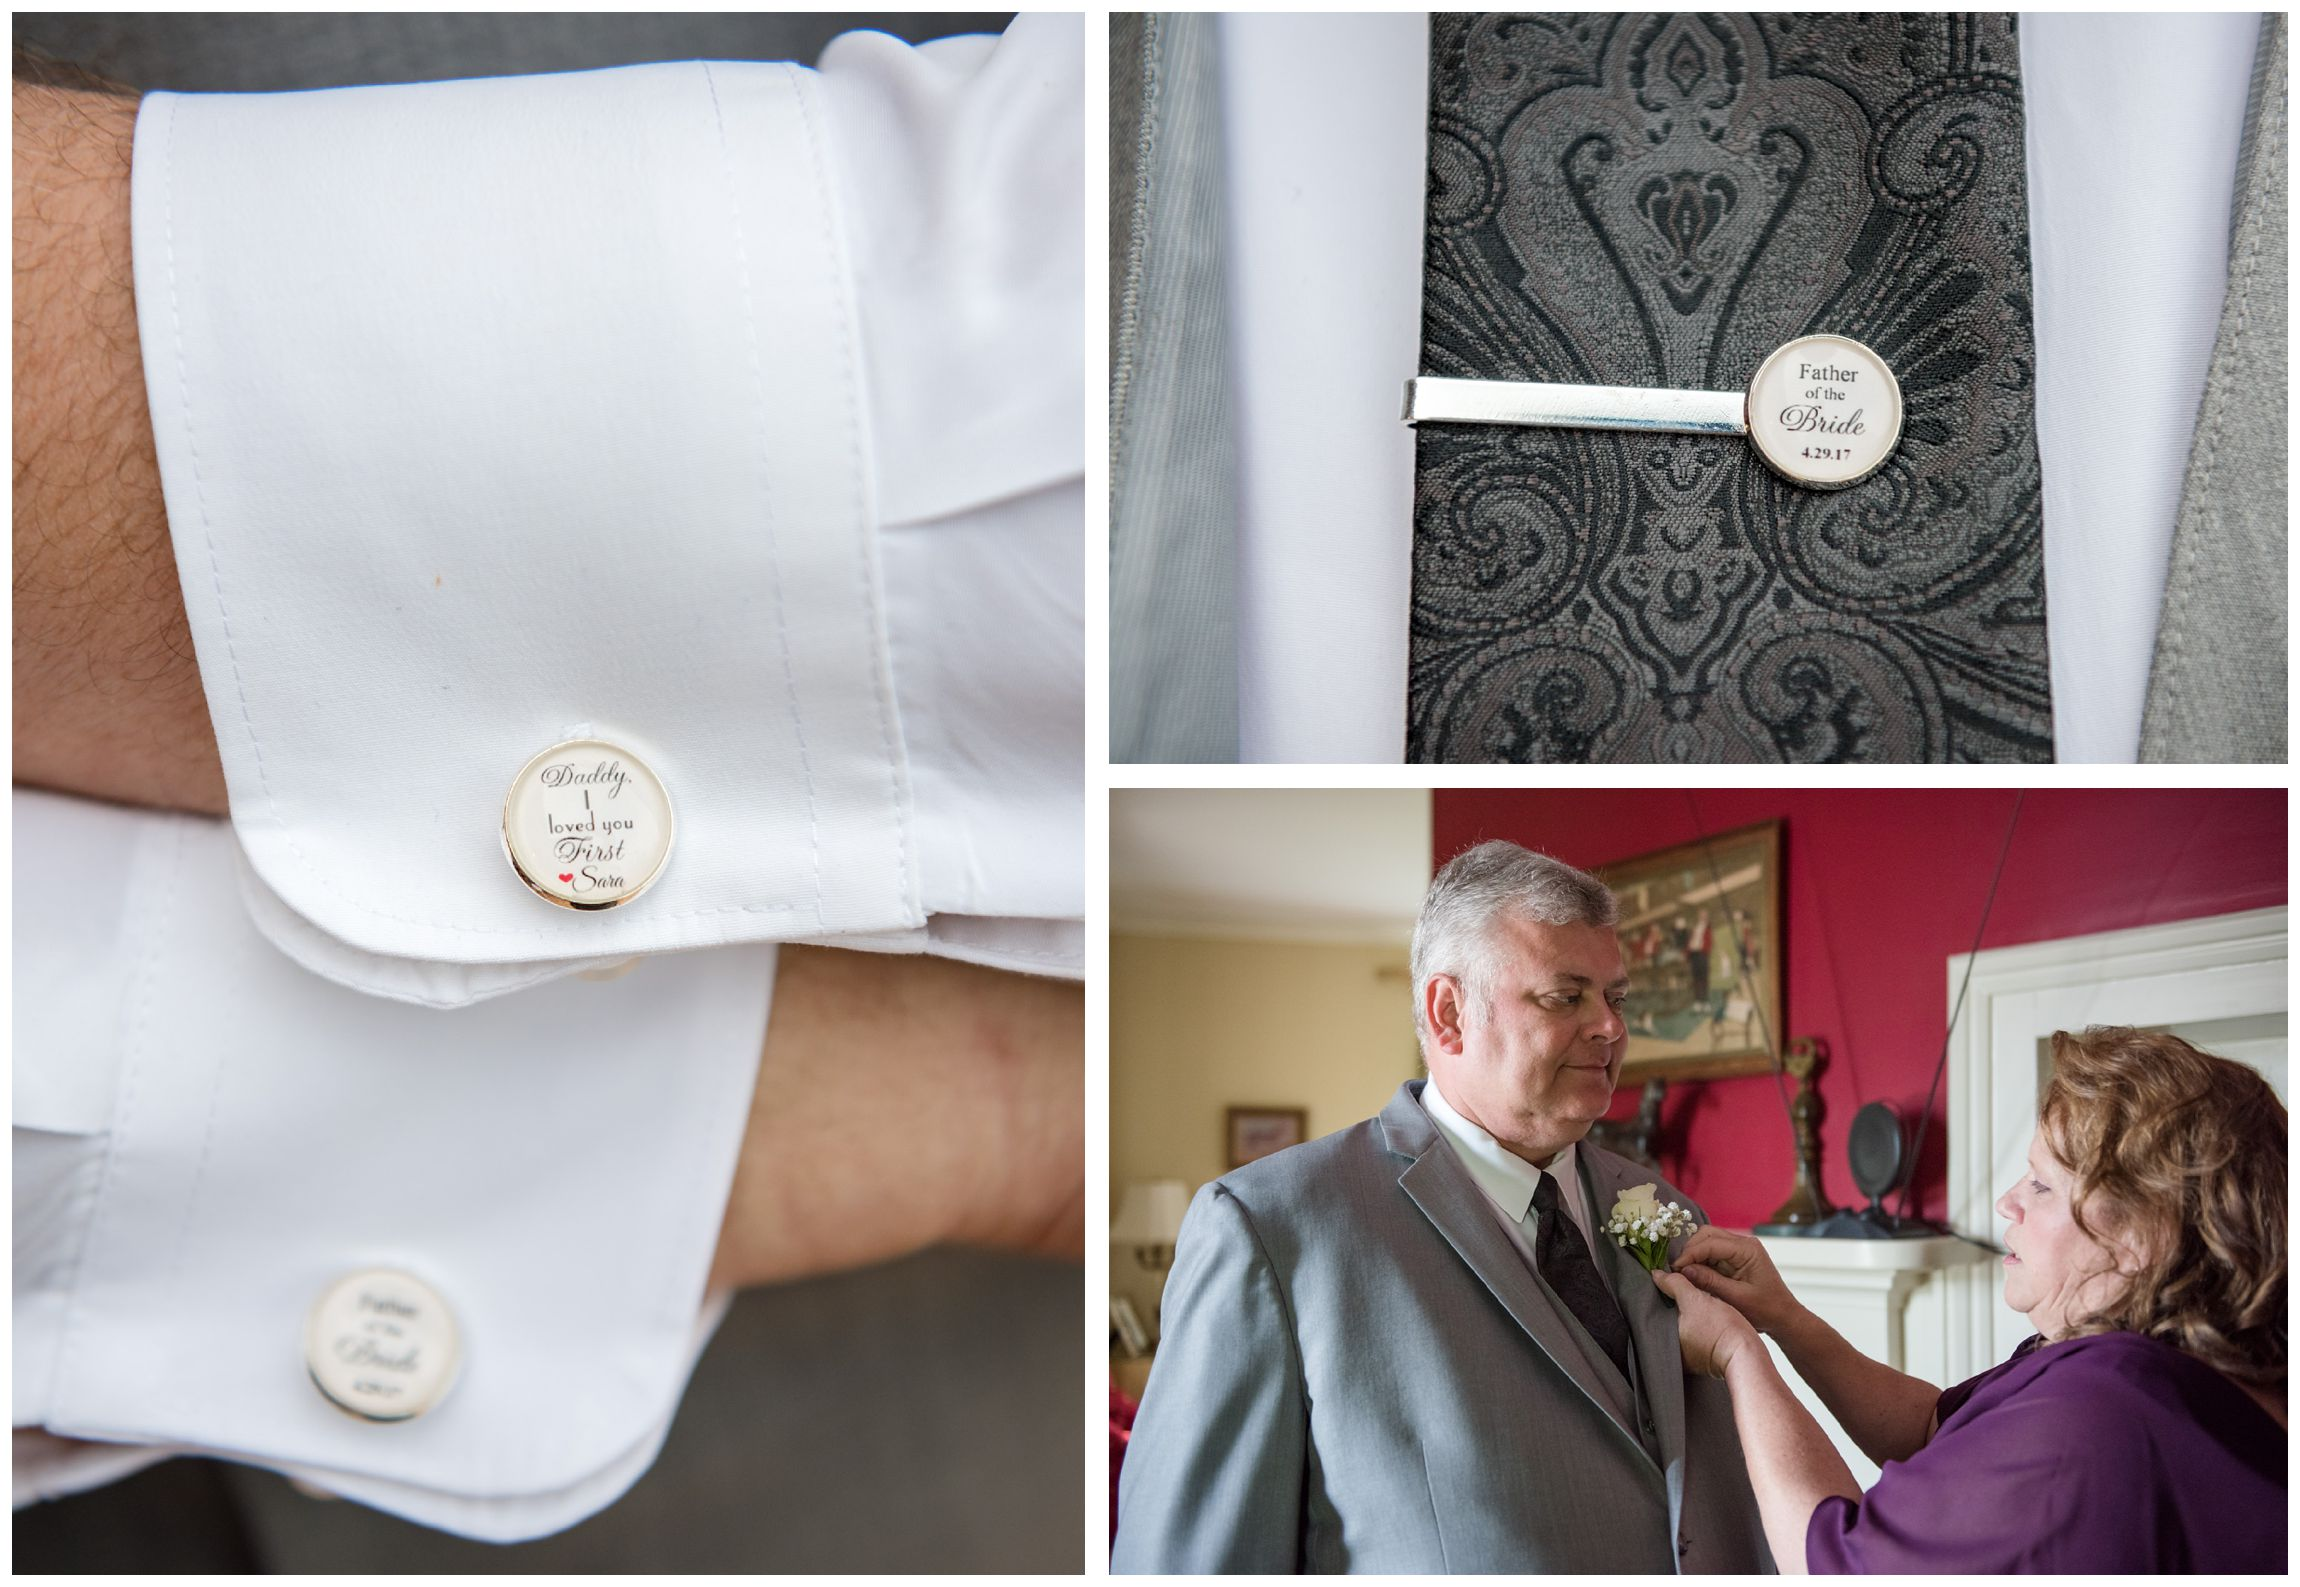 father of the bride shows off custom cuff links and tie bar